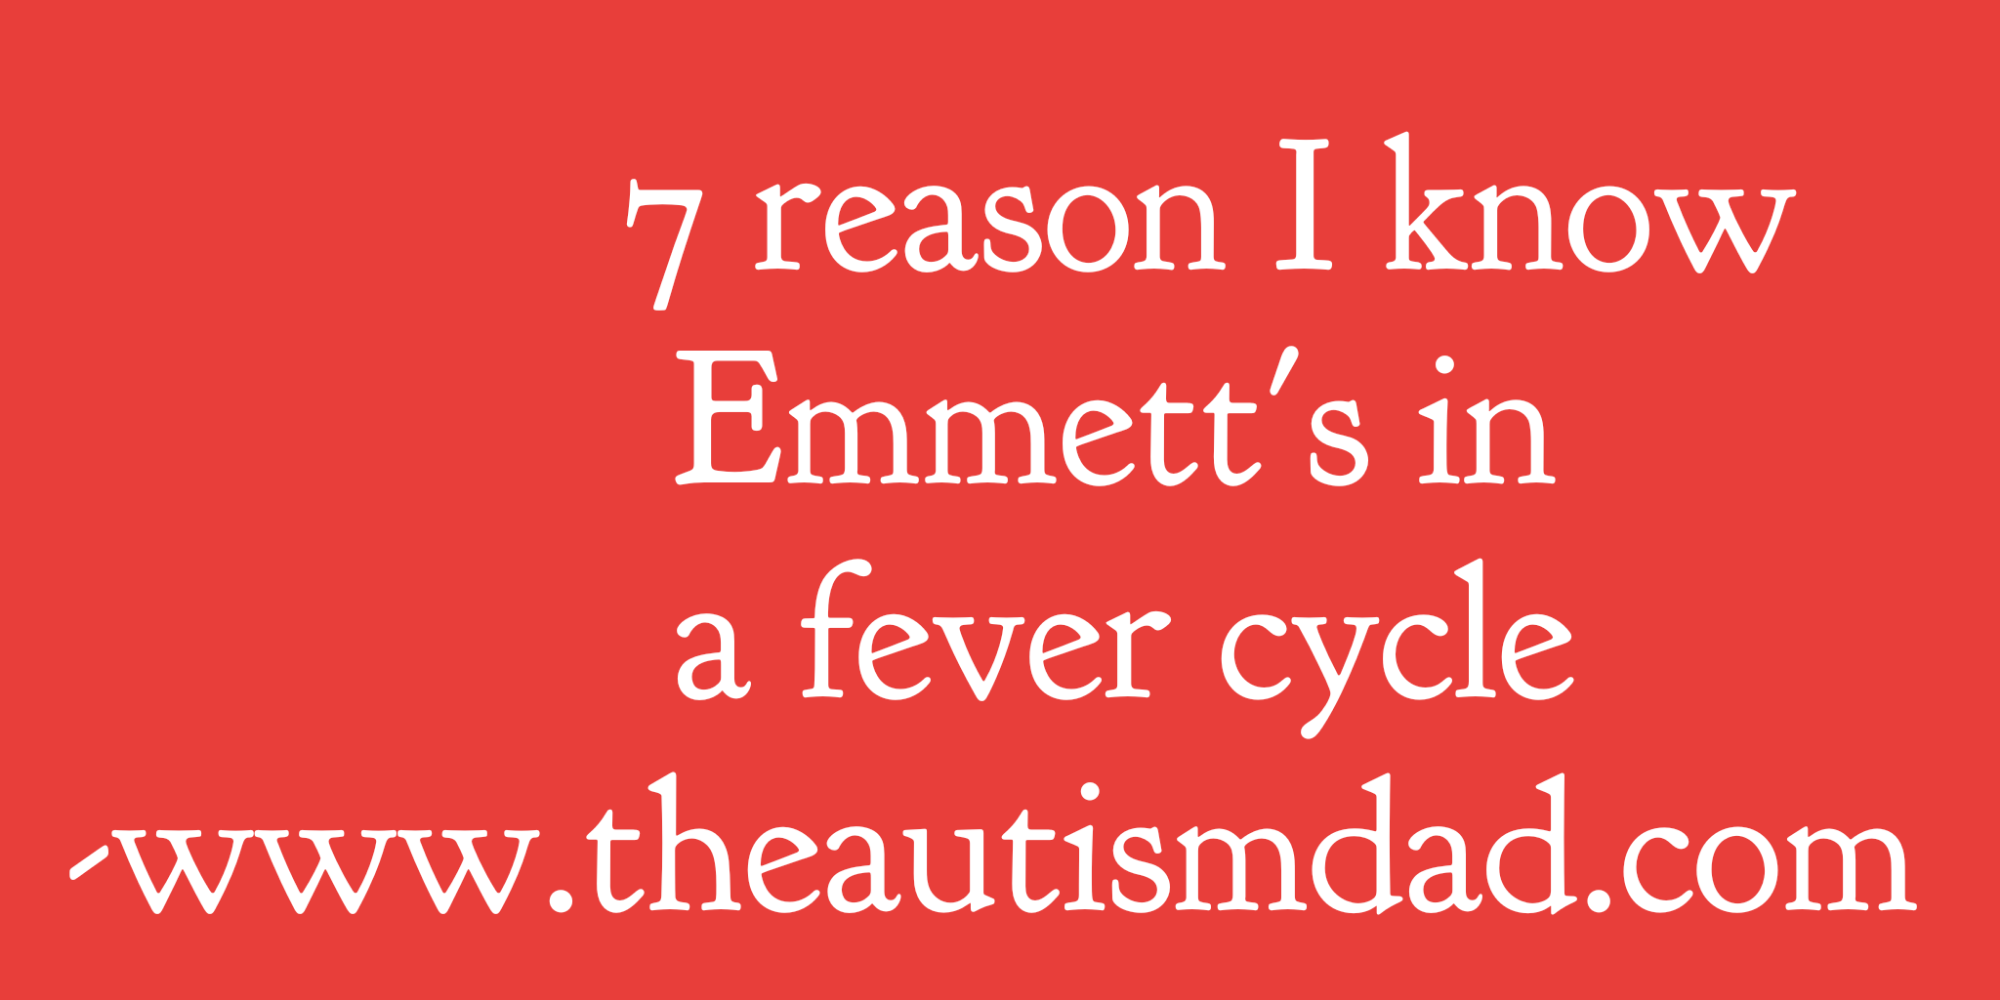 7 reason I know Emmett's in a fever cycle